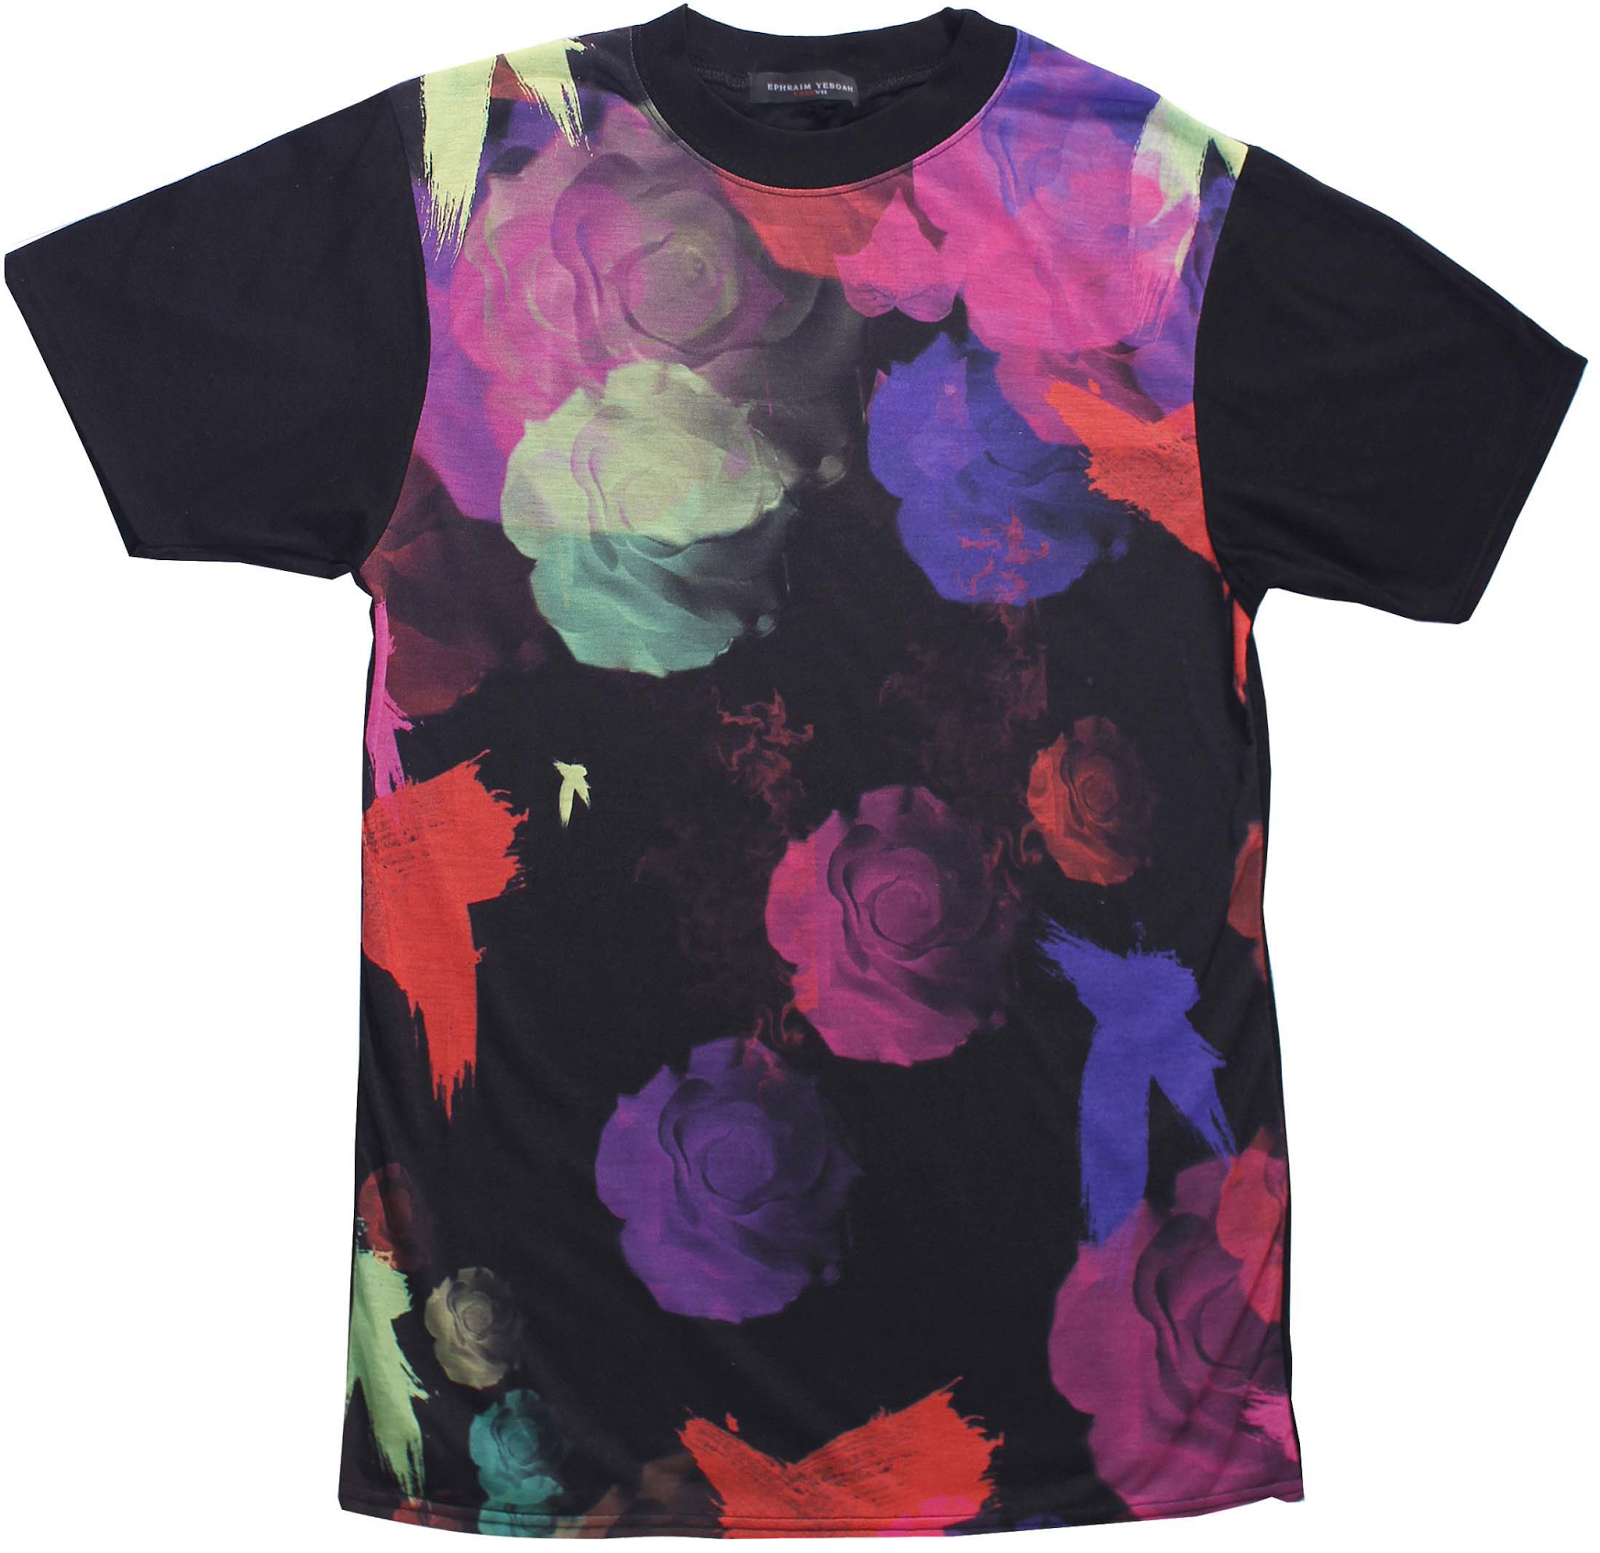 EPHRAIM YEBOAH FLOWER CHILD T-SHIRT